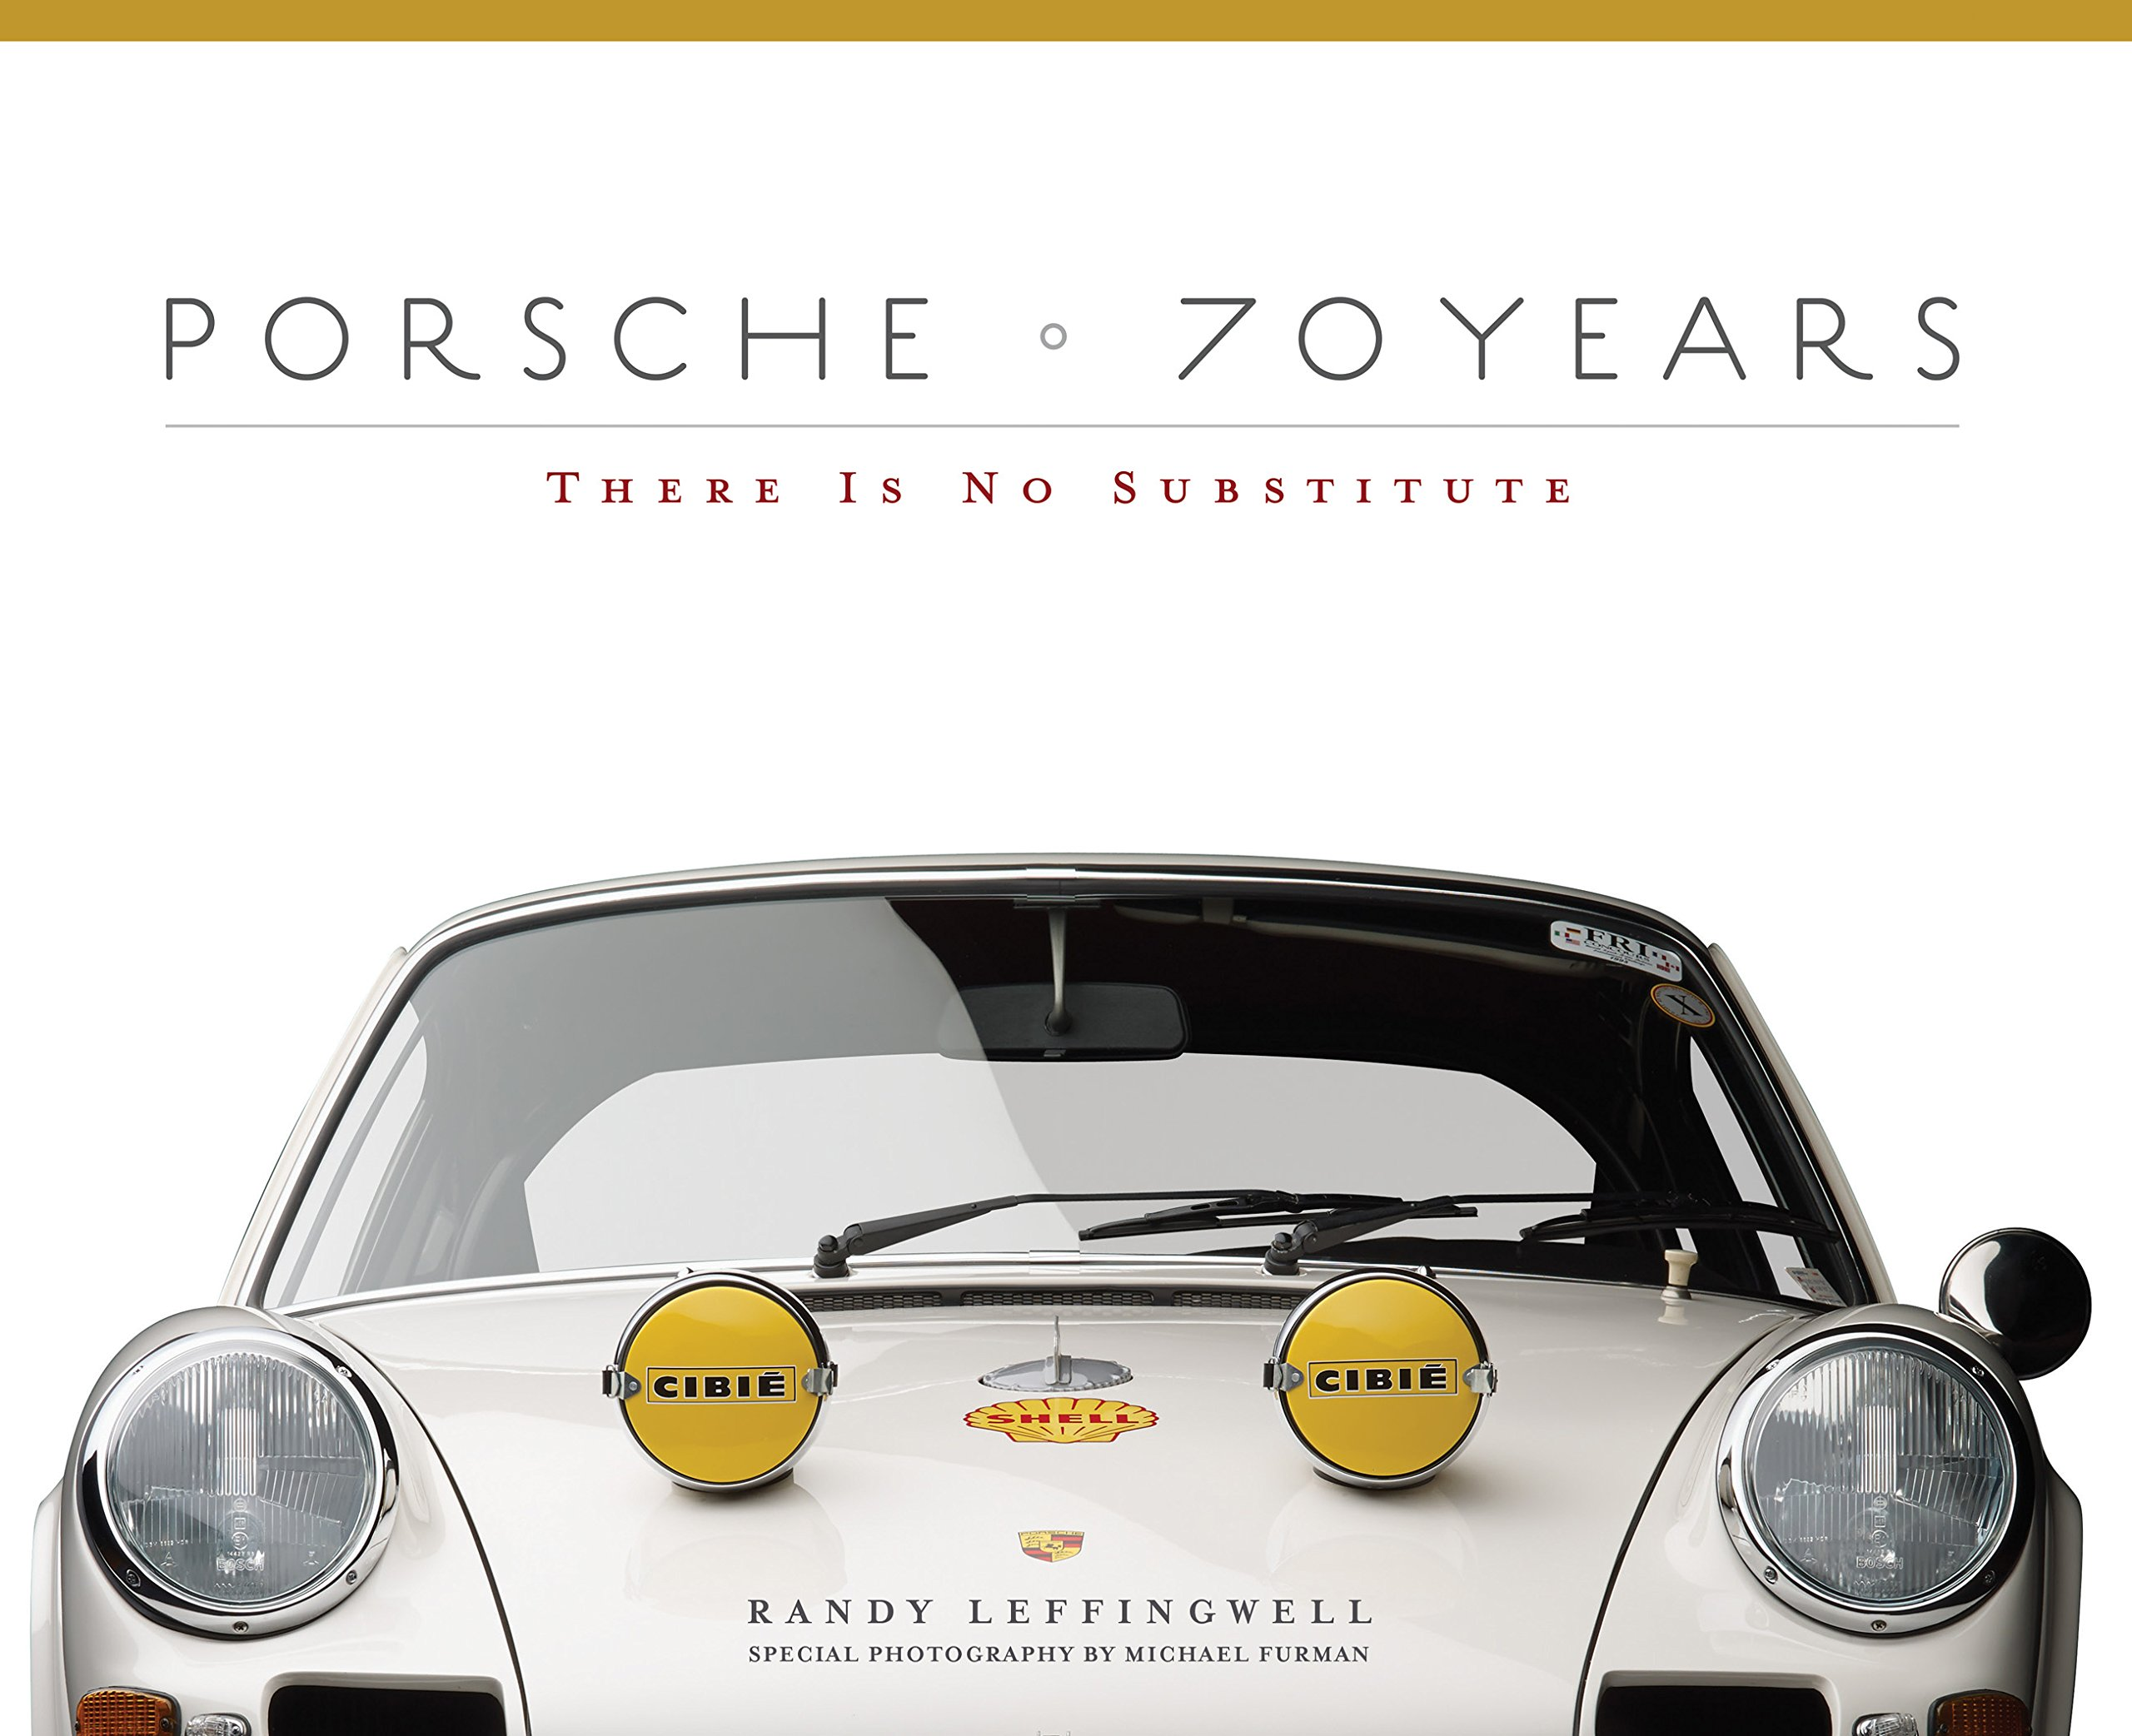 Porsche 70 Years: There Is No Substitute by Motorbooks